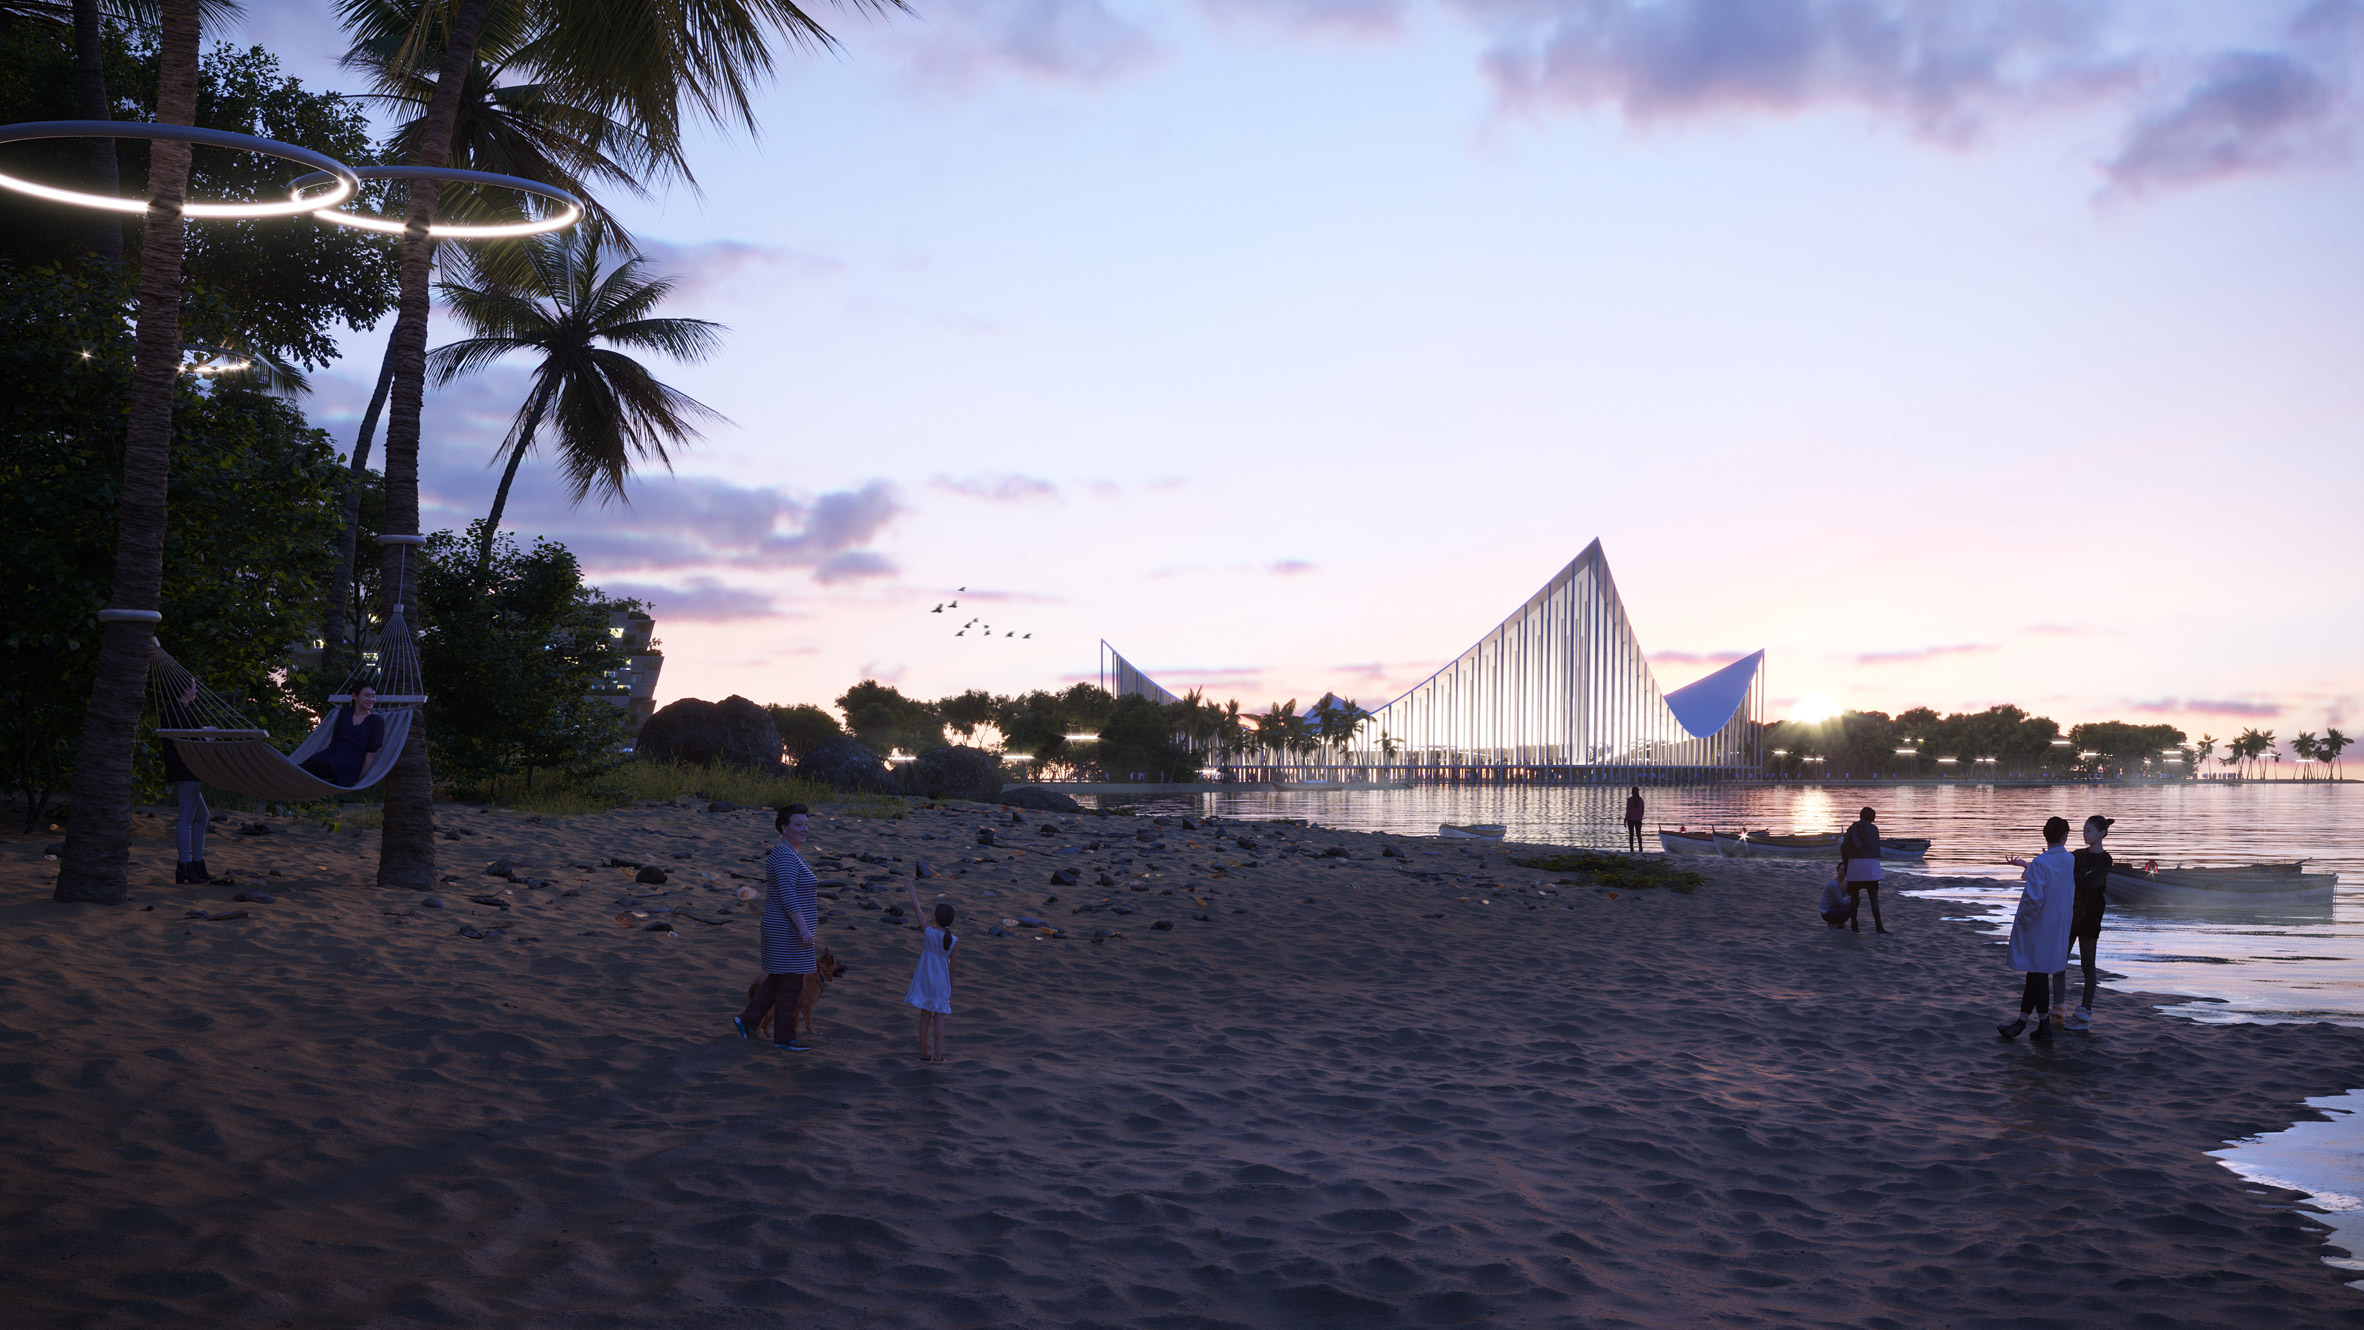 BiodiverCity masterplan by BIG for Penang Island